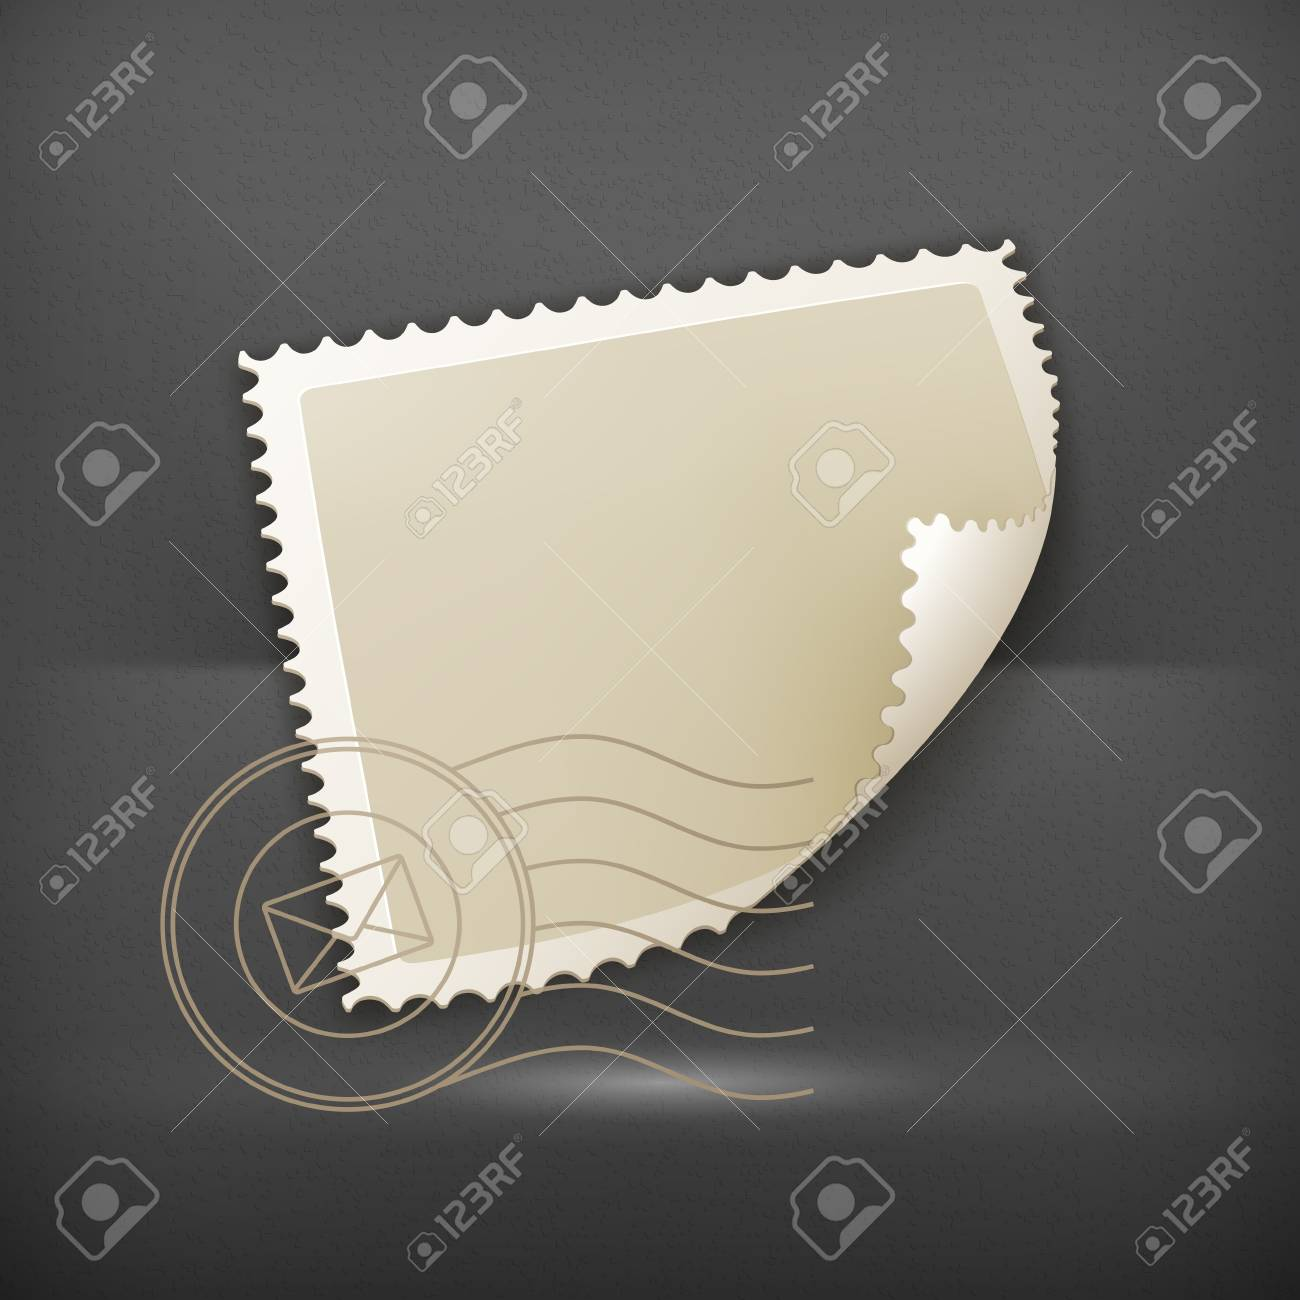 Blank Postage Stamp Stock Vector - 19437837